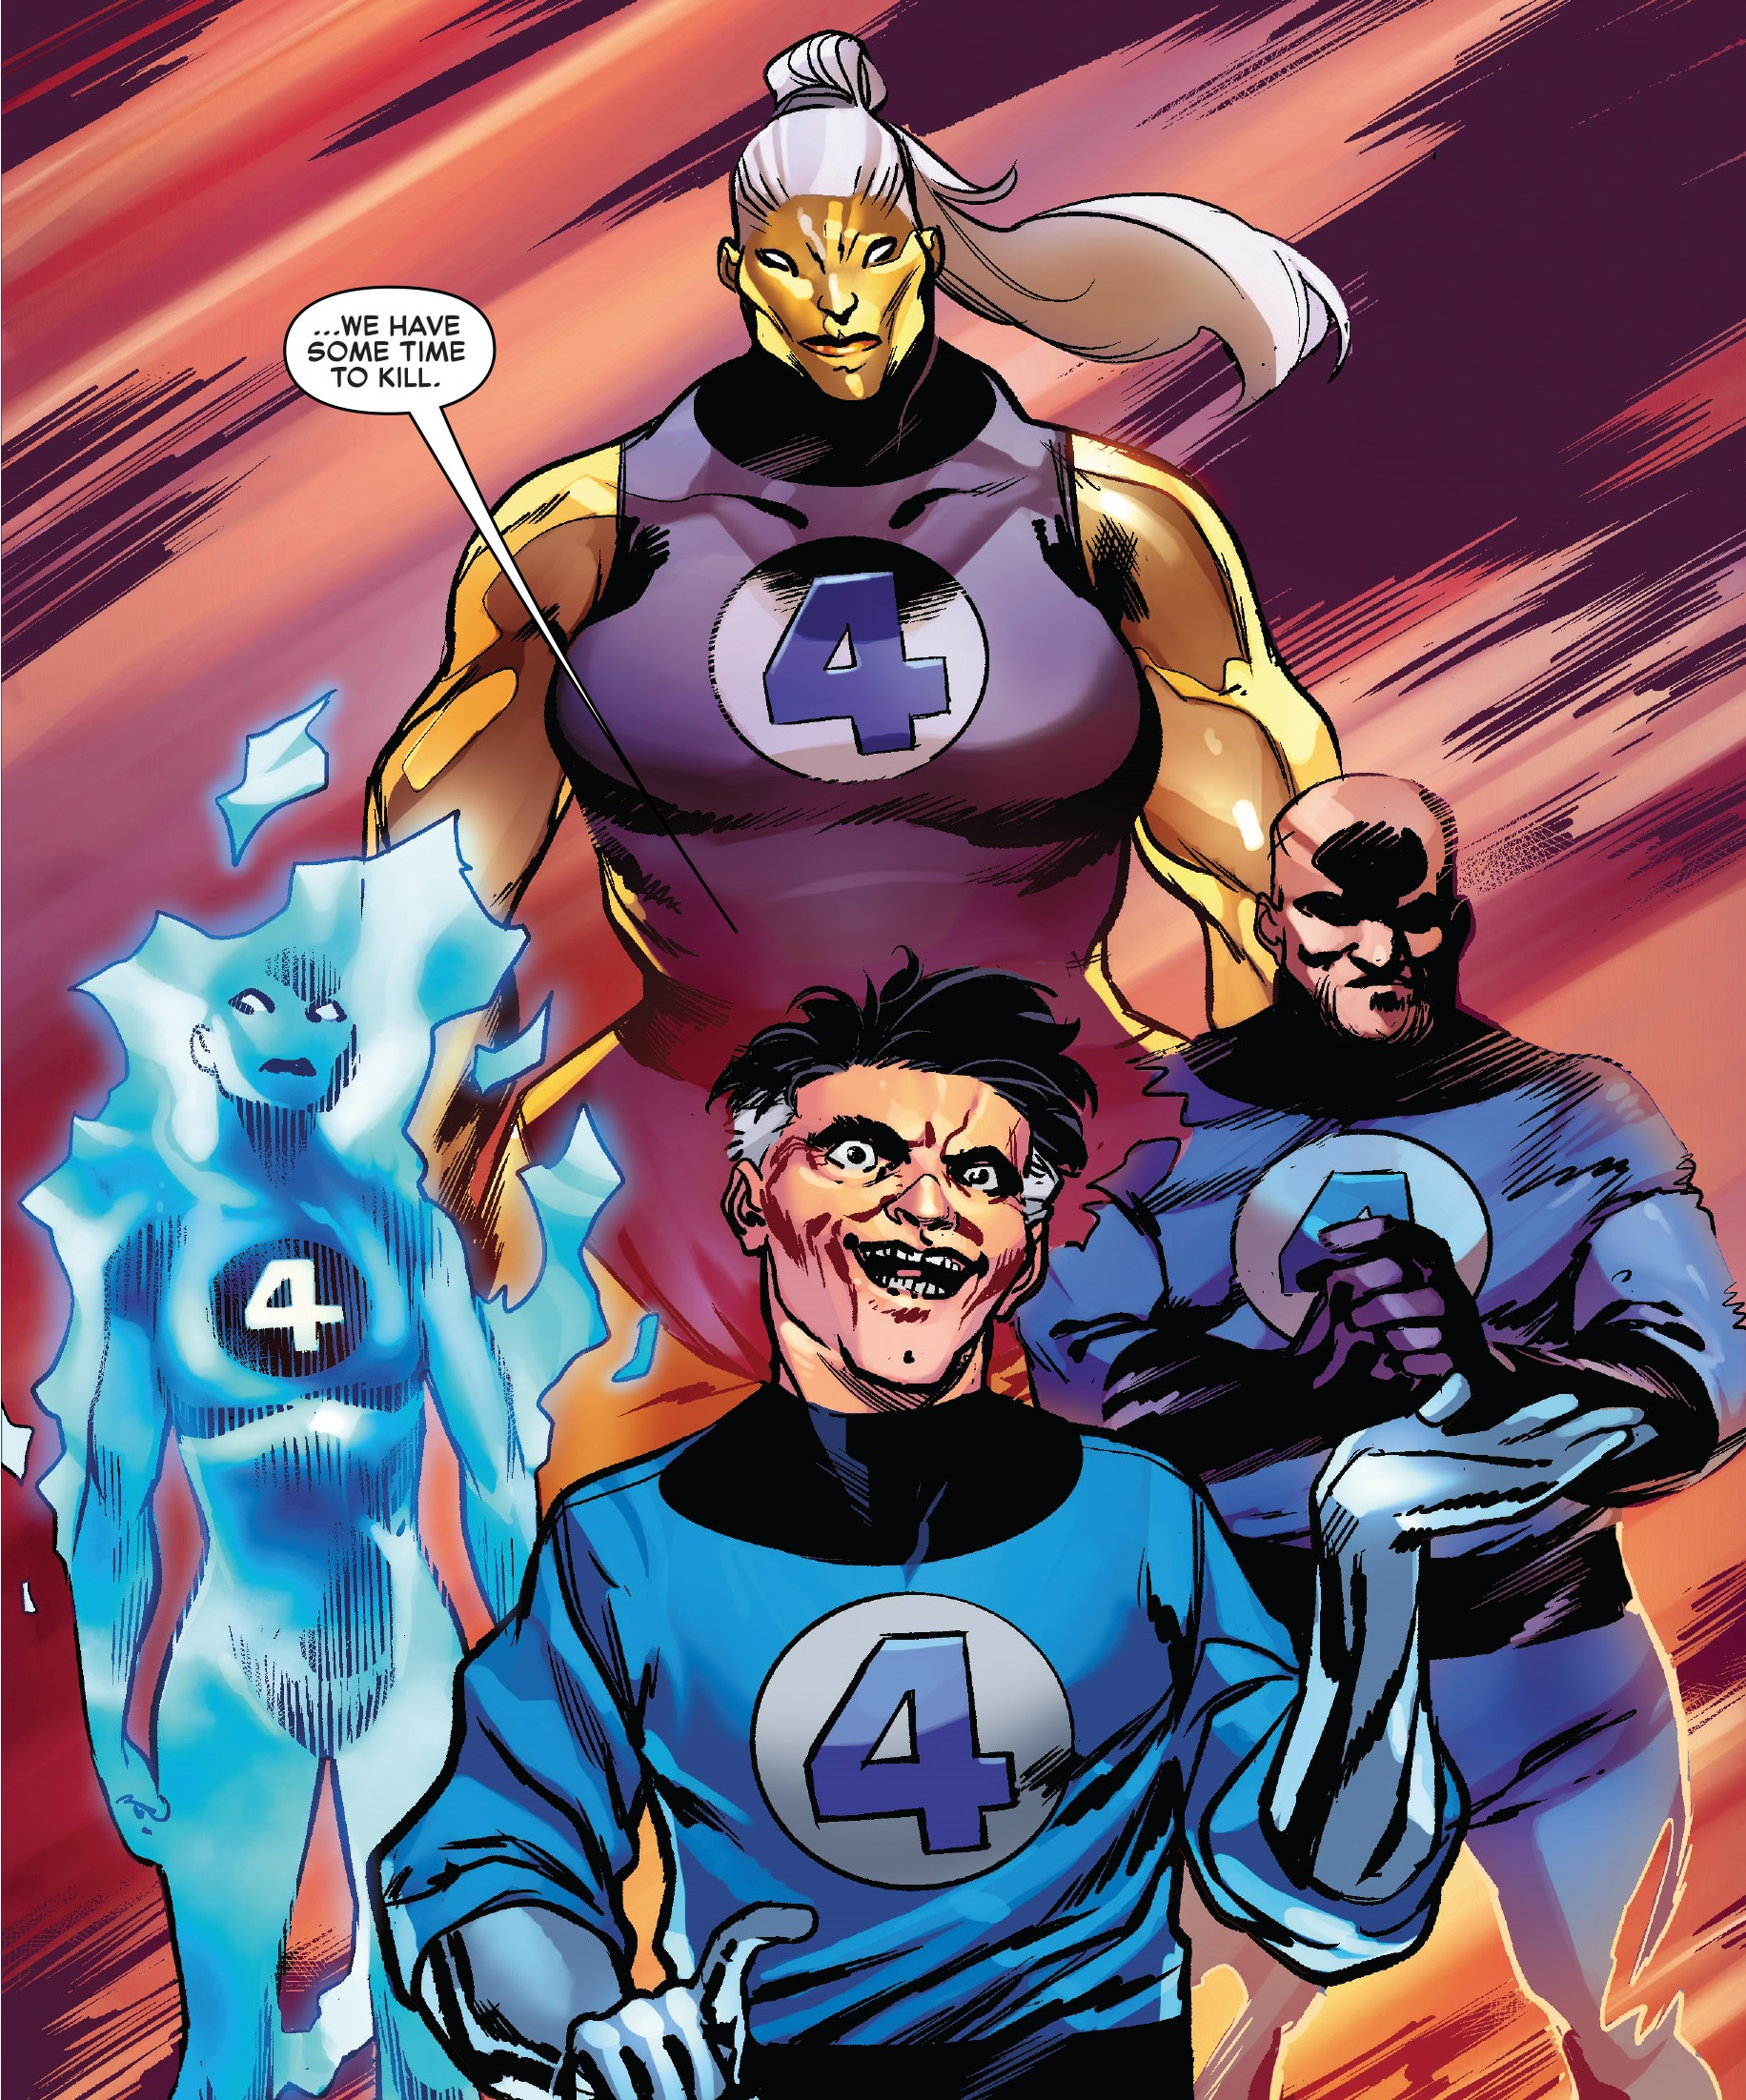 Fantastic Four (Mad Thinker's) (Earth-616)/Gallery